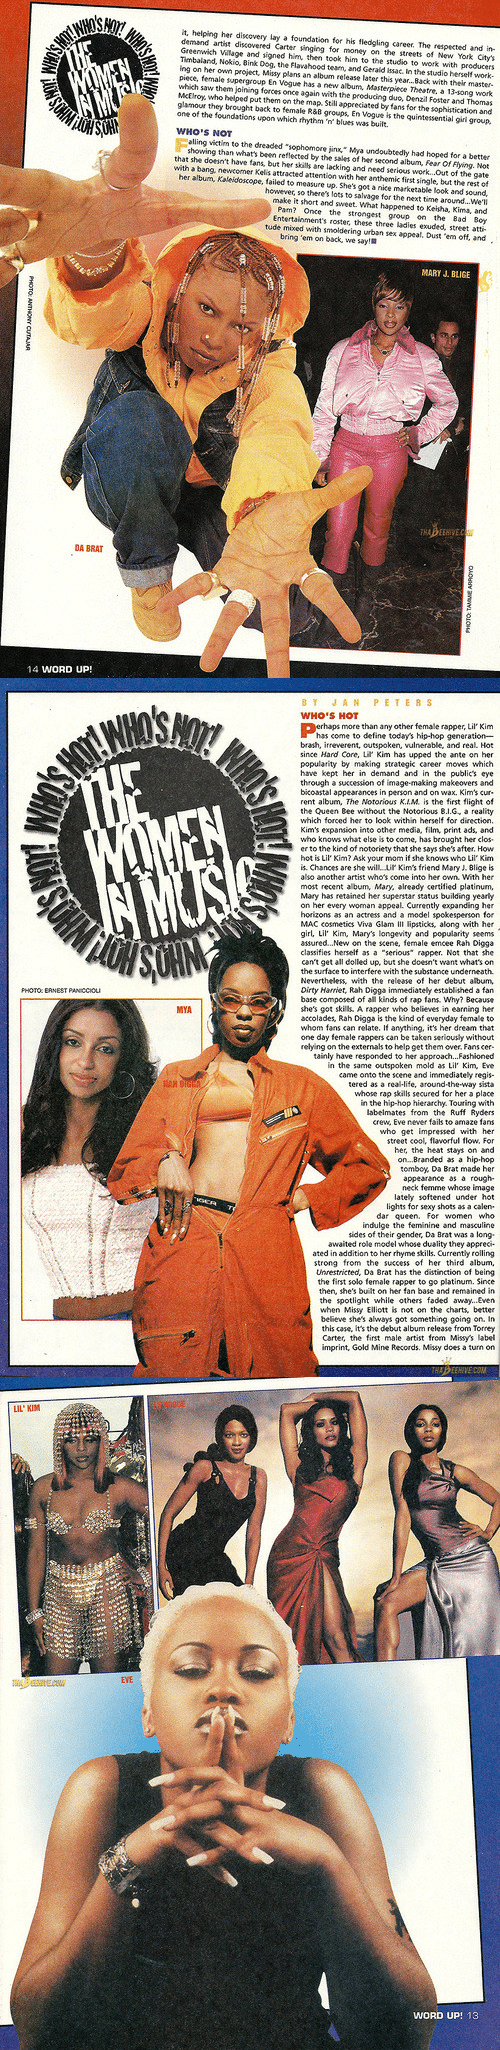 "mary j: it, helping her disovery lay a foundation for his fledgling career The respected and in-  demand artst discovered Carter singing for money on the streets of Ne York Citys  Greenwich Village and signed him, then took him to the studio to work with producers  Timbaland, Nokio, Bink Dog, the Flavahood team, and Gerald issac. In the studio herself work  ing on her own project, Missy plans an album release later this year...Back with their master-  piece, female supergroup En Vogue has a new album, Masterpiece Theatre, a 13-song work  which saw them joining forces once again with the producing duo, Denzil Foster and Thomas  McElroy, who helped put them on the map. Still appreciated by fans for the sophistication and  glamour they brought back to female R&8 groups, En Vogue is the quintessential girl group.  one of the foundations upon which rhythm 'n blues was built.  WHO'S NOT  showing than whats been reflected by the sales of her second album, Fear Of Flying. Not  that she doein't have fans, but her skills are lacking and need serious work..Out of the gate  with a bang, newcomer Kelis attracted attention with her anthemic first single, but the rest of  her albun, Kleidoscope, failed to measure up. Shes gt a nice marketable look and sound.  however, so there's lots to salvage for the next time around..We'll  make it short and sweet. What happened to Keisha, Kima, and  Pam? Once the strongest group on the Bad Boy  Entertainment's roster, these three ladies exuded, street atti  tude mixed with smoldering urban sex appeal, Dust 'em off, and  bring 'em on back, we say!  MARY J. BLIGE  DA BRAT  14 WORD UP!   BYJAN PETERS  WHO'S HOT  rhaps more than any other female rapper, Lil Kim  has come to define today's hip-hop generation  brash, irreverent, outspoken, vulnerable, and real. Hot  since Hard Core, L Kim has upped the ante on her  populatity by making strategik career moves which  have kept her in demand and in the publics eye  through a succession of image-making makeovers and  bicoastal appearances in person and on wax. Kim's cur  rent album, The Notorious K,LM is the first flight of  the Queen Bee without the Notorious 8.1.G, a reality  which forced her to look within herself for direction.  Kim's expansion into other media, film, print ads, and  who knows what else is to corme, has brought her clos  er to the kind of notoriety that she says she's after, How  hot is Lil Kim? Ask your mom if she knows who Lil Kim  is. Chances are she will. Lir Kim's friend Mary J. Blige is  also another artist whos come into her own. With her  most recent album, Mary, already certitied platinum,  Mary has retained her superstar status building yeary  on her every woman appeal. Currently expanding her  horizons as an actress and a model spokesperson for  MAC cosmetics Viva Glam lI lipsticks, along with her  girl, Lil Kim, Mary's longevity and popularity seems  assured...New on the xene, female emcee Rah Digga  classifies herself as a ""serious"" rapper. Not that she  cant get all dolied up, but she doesn't want what's on  the surface to interfere with the substance underneath.  Nevertheless, with the releave of her debut album,  Dirty Harriet, Rah Digga immediately established a fan  base composed of all kinds of rap fans. Why? Because  shes got skilk. A rapper who believes in earning her  accolades, Rah Digga s the kind of everyday female to  whom fans can relate. If anything, it's her dream that  one day female rappers can be taken seriously without  relying on the externals to help get them over. Fans cer-  tainly have responded to her approach...Fashioned  in the same outspoken mold as Lil Kim, Eve  came onto the scene and immediately regis  tered as a real-life, around-the-way sista  whose rap skills secured for her a place  in the hip-hop hierarchy. Touring with  labelmates from the Ruff Ryders  crew, Eve never fails to amaze fans  who get impressed with her  street cool, flavorful flow, For  her, the heat stays on and  on...Branded as a hip hop  tomboy, Da Brat made her  appearance as a rough  neck femme whose image  lately softened under hot  lights for sexy shots as a calen  dar queen. for women whe  indulge the feminine and masculine  sides of their gender, Da Brat was a long  awaited role model whose duality they appreci-  ated in addition to her rhyme skills. Currently rolling  strong from the success of her third album  Unrestricted, Da Brat has the distinction of being  the first solo female rapper to go platinum. Since  then, shes built on her fan base and remained in  the spotlight while others faded away...Even  when Missy Elliott inot on the charts, better  believe she's always got something going on. In  this case, it's the debut album release from Torrey  Carter, the first male artist from Missy's label  imprint, Gold Mine Records. Missy does a turn on  ERNEST PANCCIOU  MYA   LIL'KIM  EN VOGUE  EYE  WORD UP! 13"